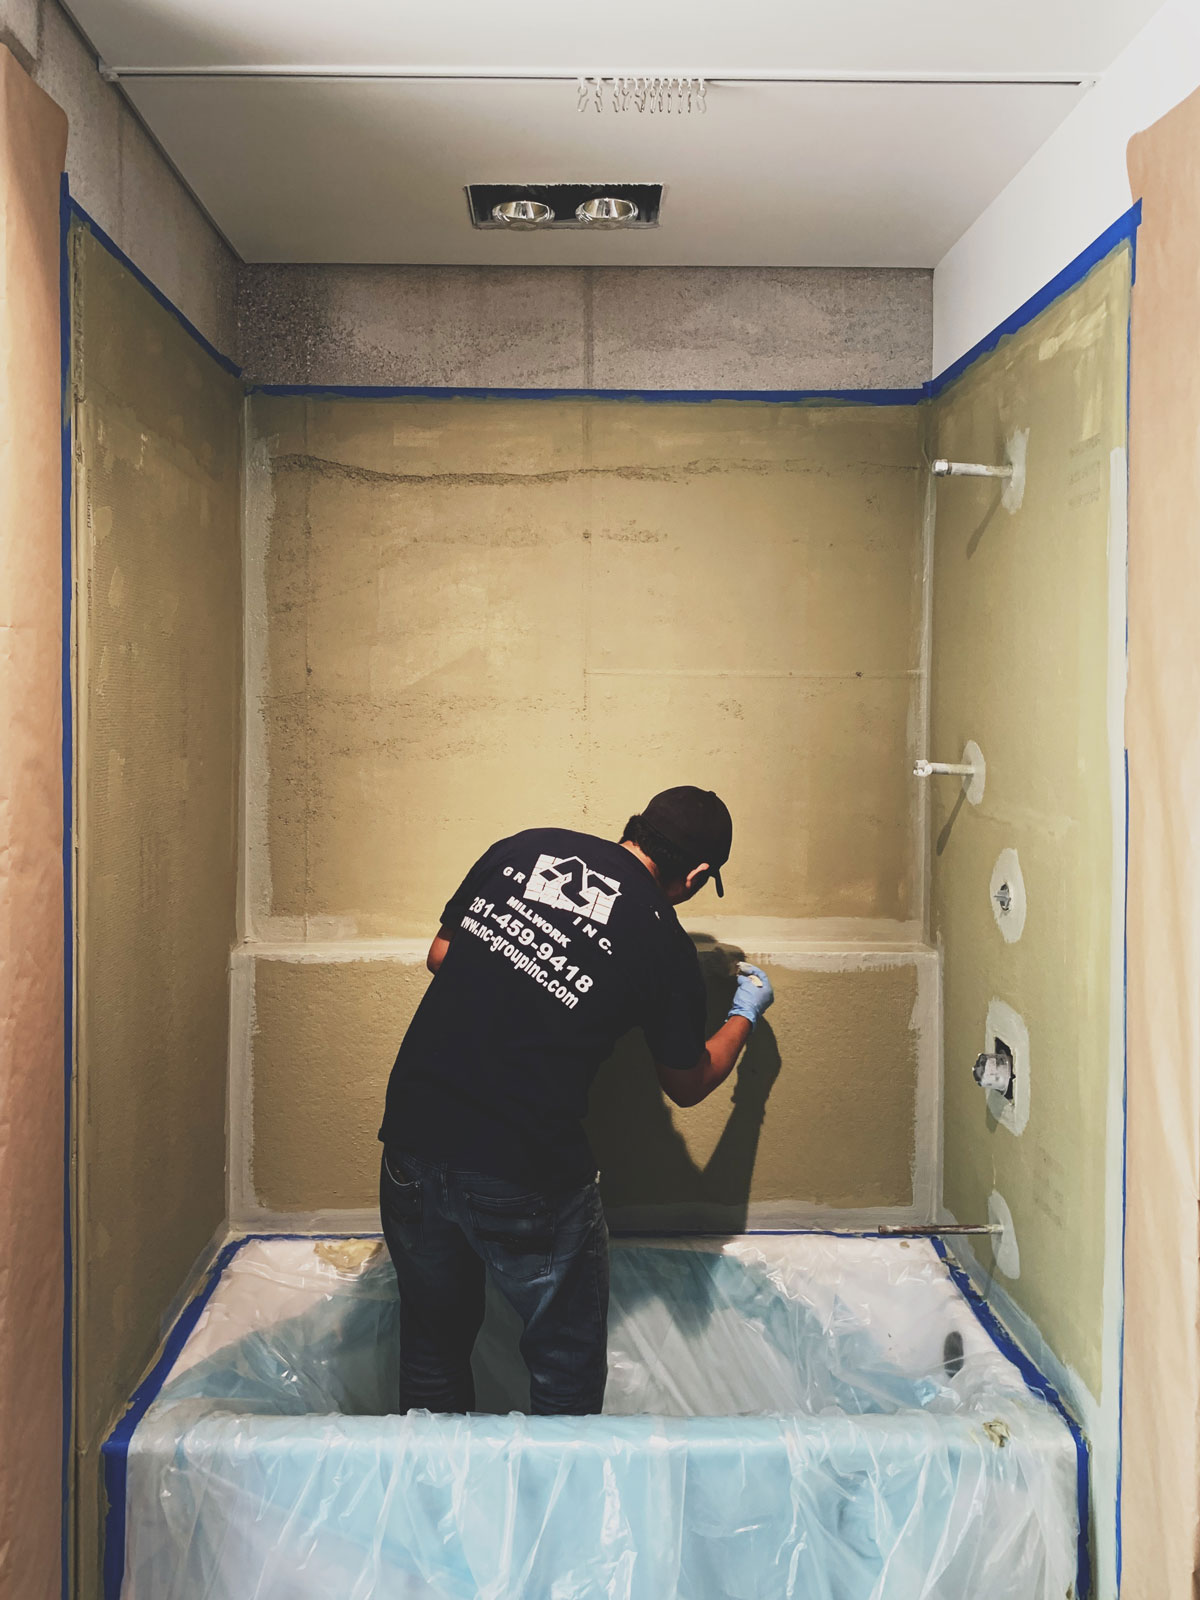 Waterproofing the tub and shower surround in preparation for tile